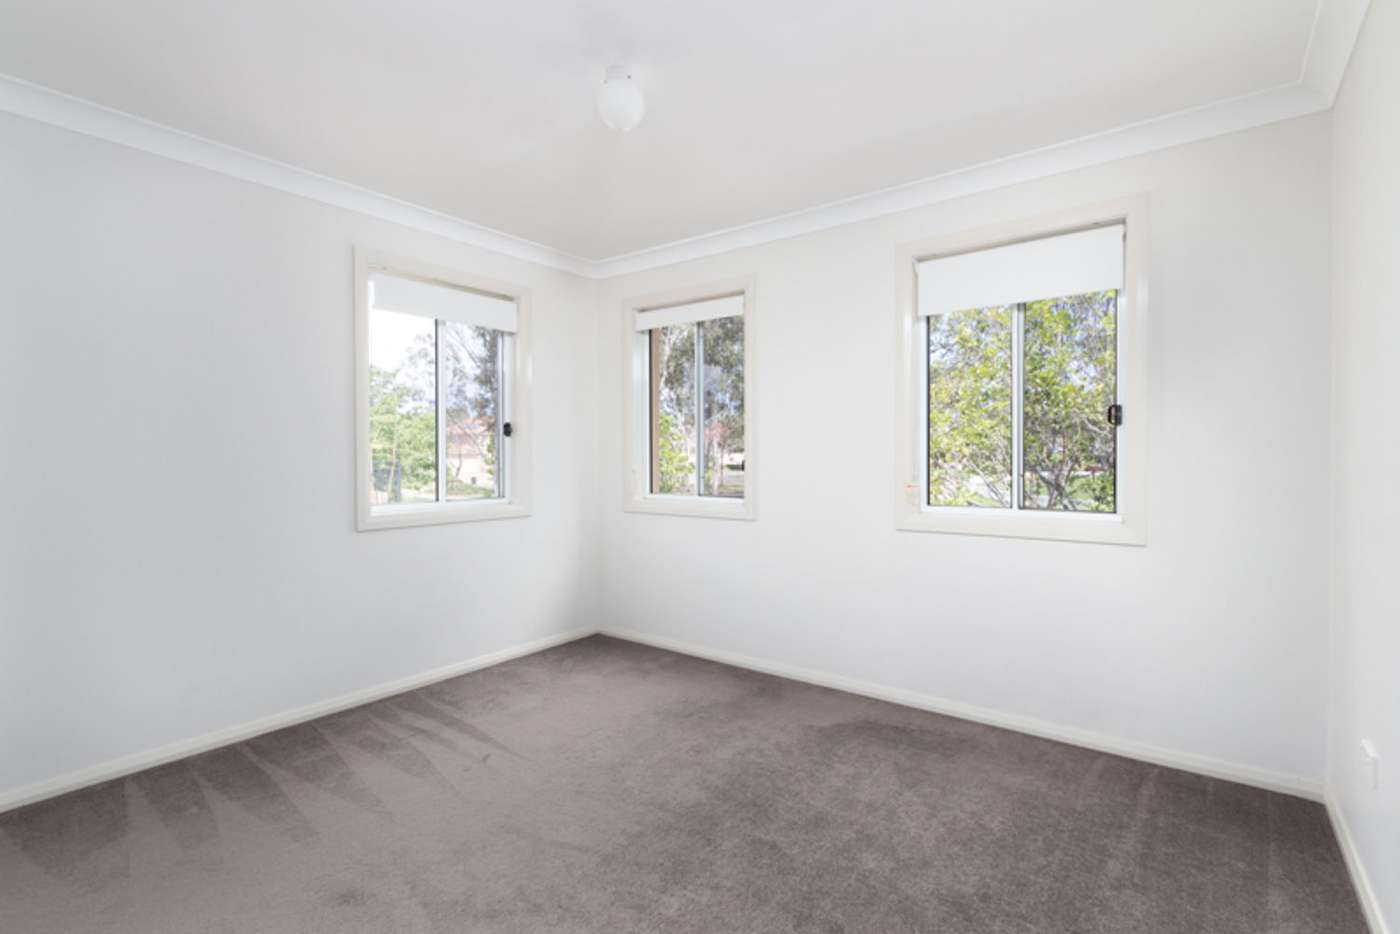 Sixth view of Homely house listing, 14 Noble Way, Rouse Hill NSW 2155